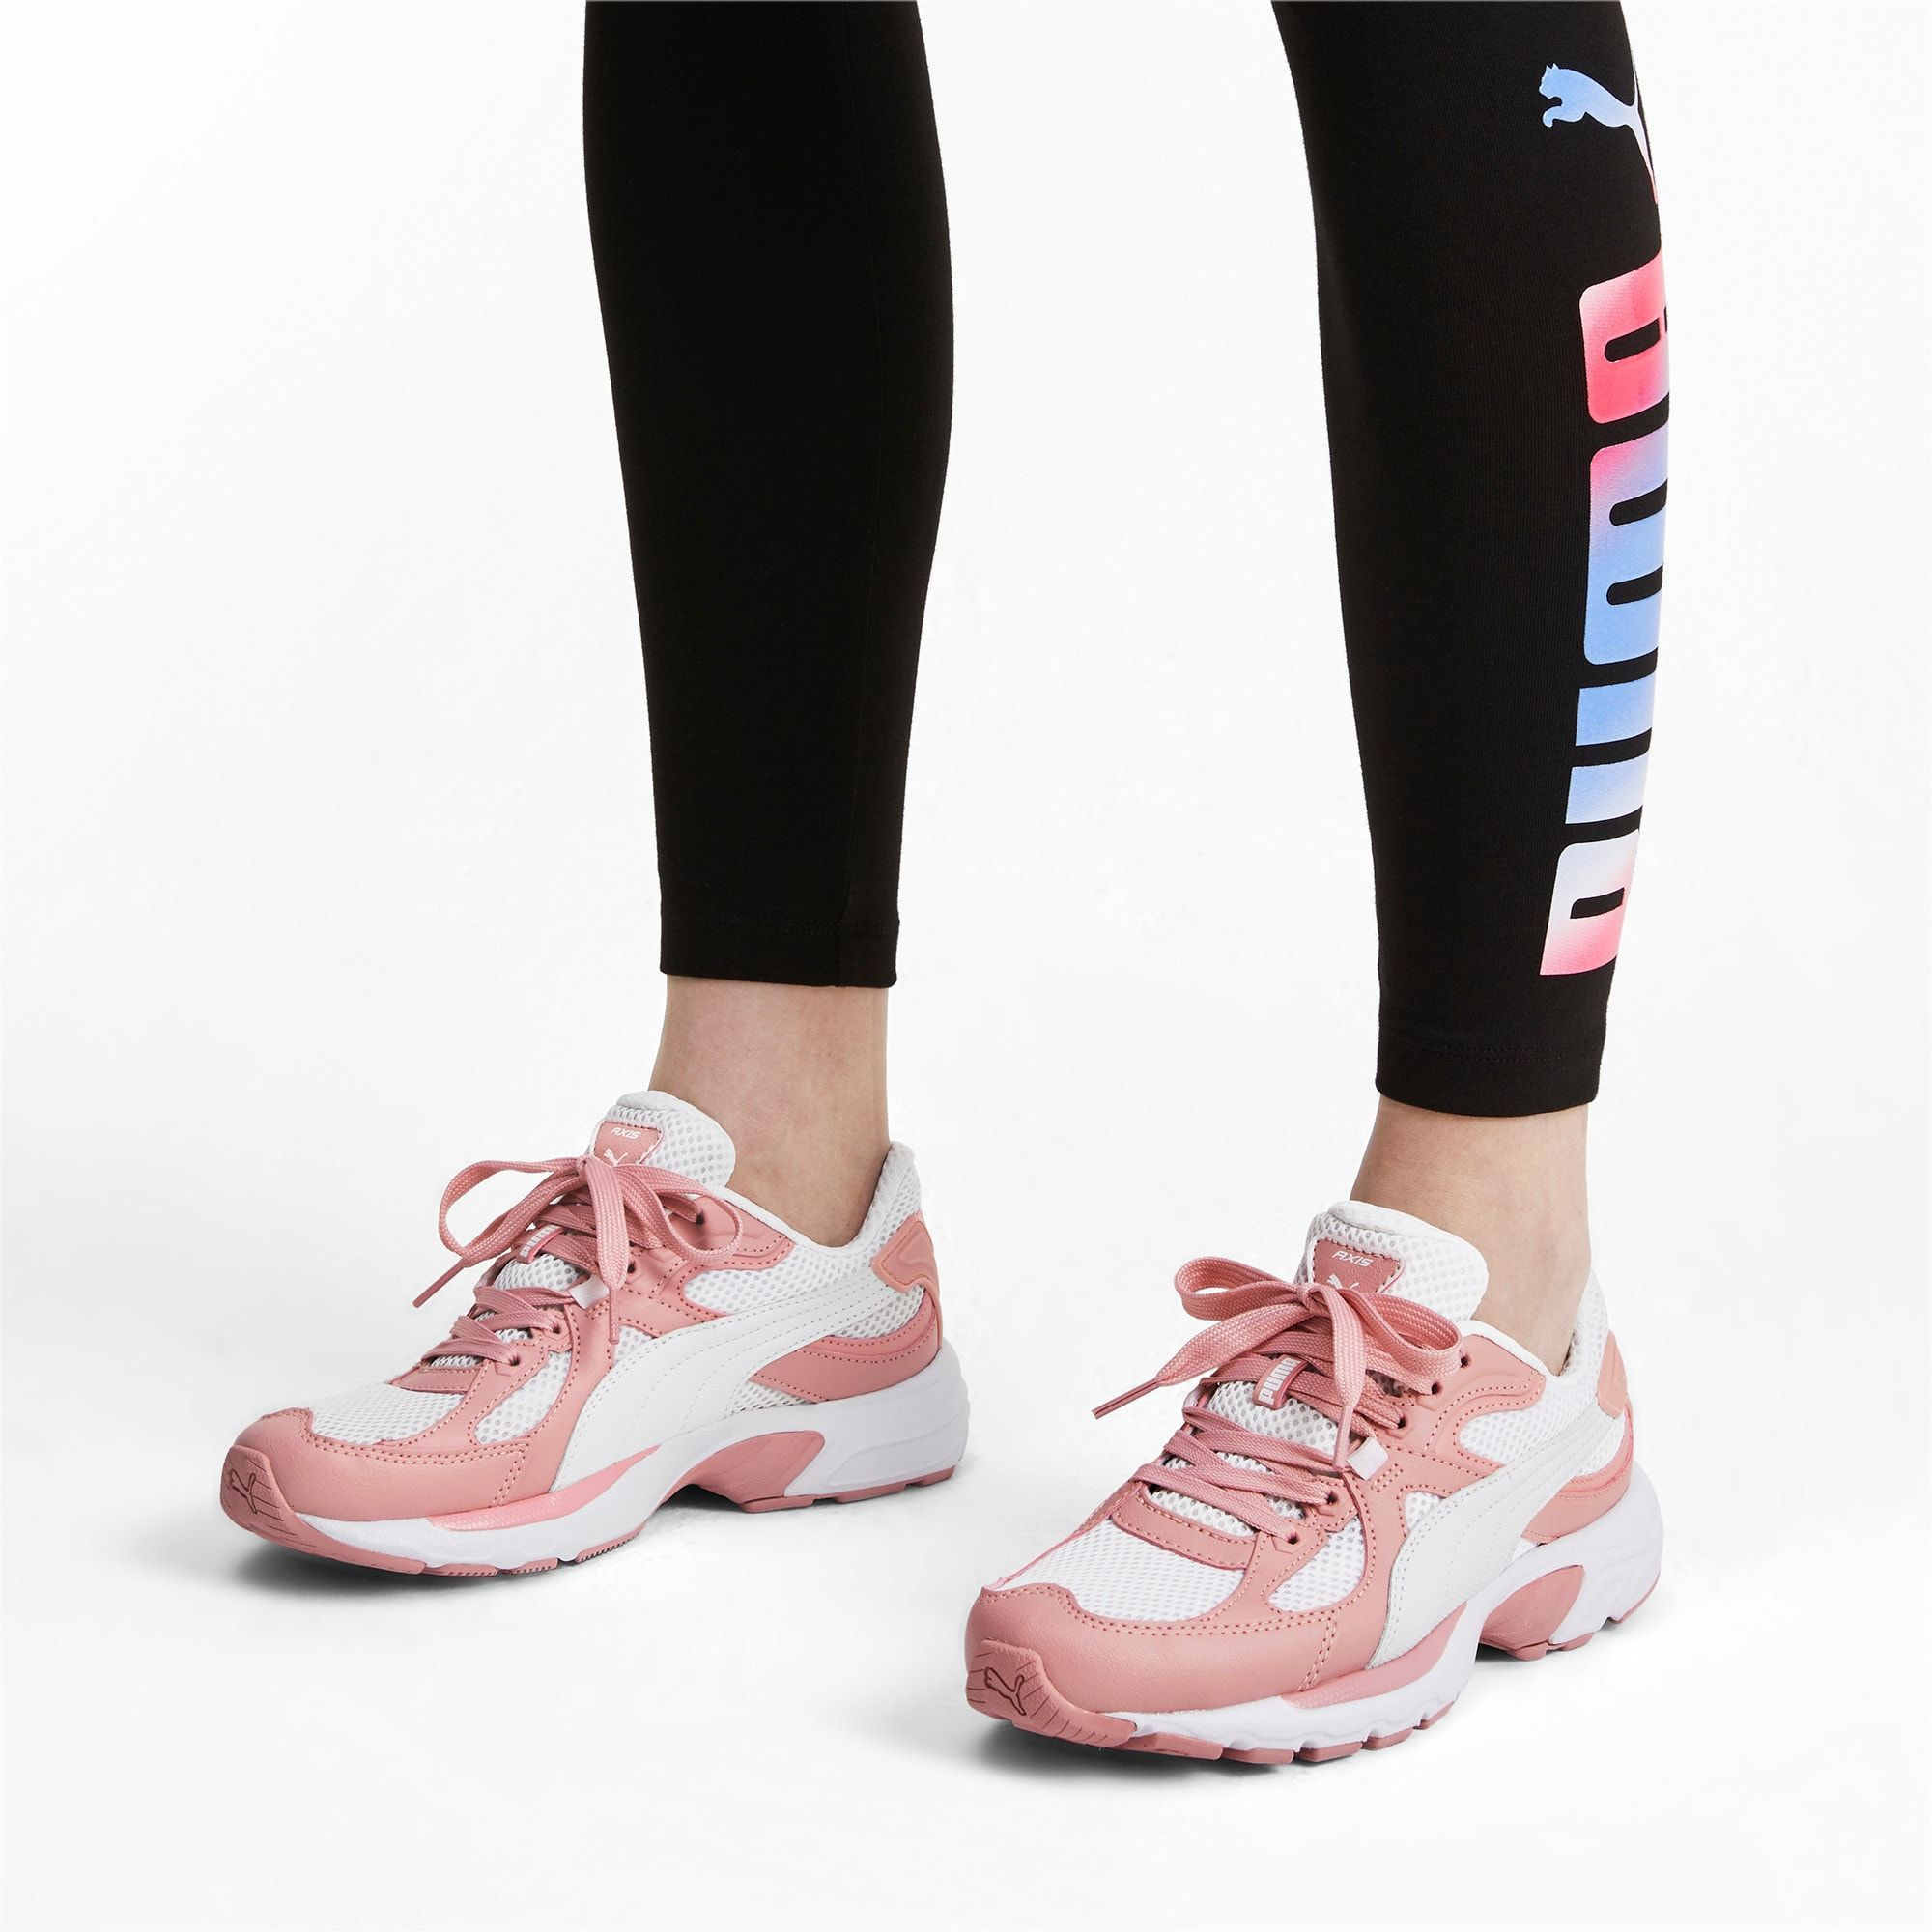 bandera Probablemente Mula  PUMA Axis Plus 90S Trainers in White/Bridal Rose size 10.5 #fashioninthe90s PUMA  Axis Plus 90S Trainers in White/Bridal Rose size 10.5 | Women shoes, Puma,  Heels